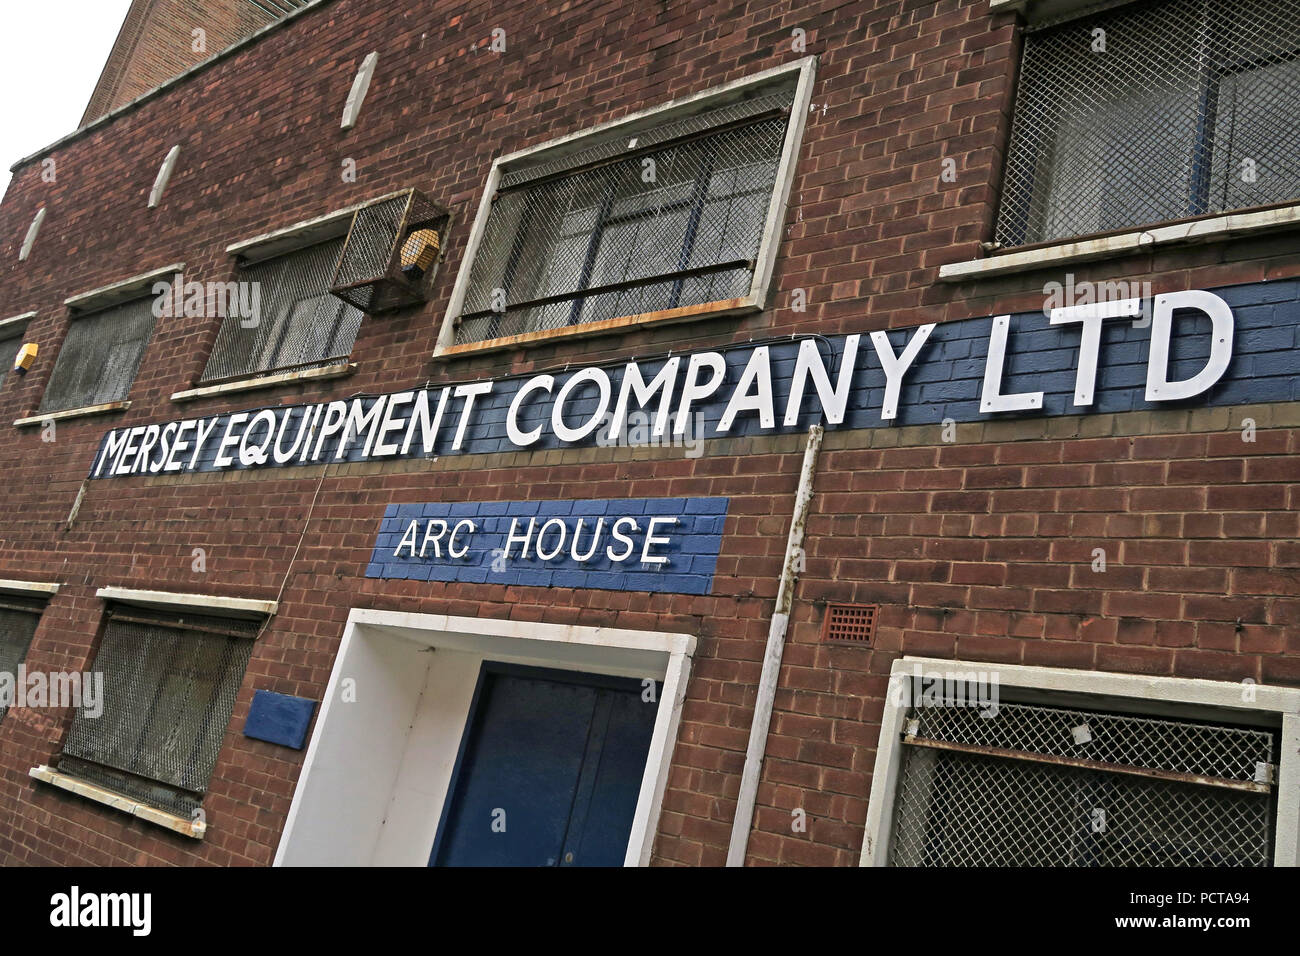 Arc House, Mersey Equipment Company Ltd, Arc House, Birkenhead, Wirral, Merseyside, North West England, UK - Stock Image